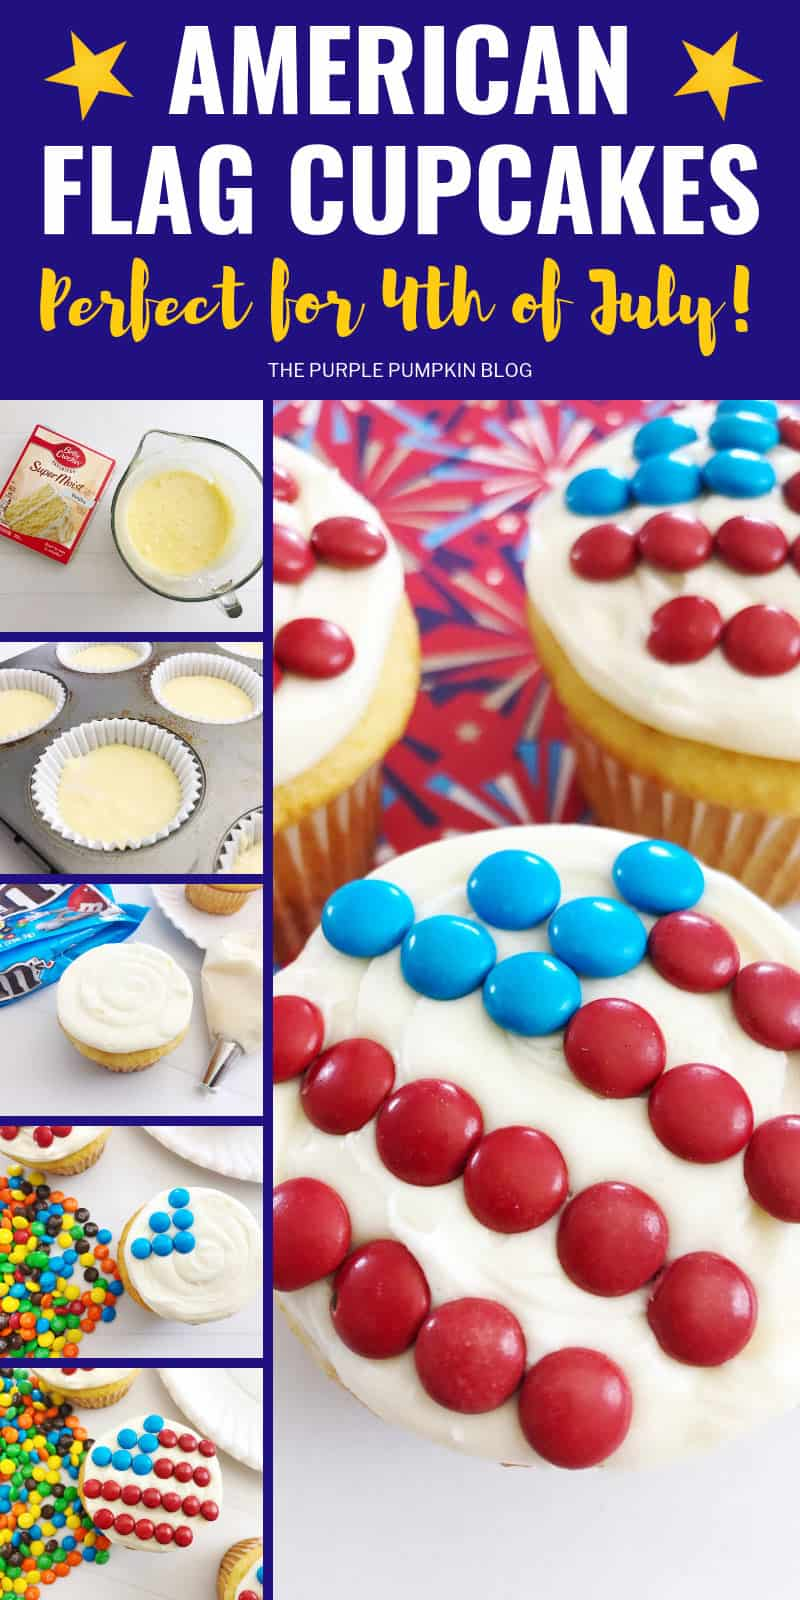 American Flag Cupcakes - Perfect for 4th of July!